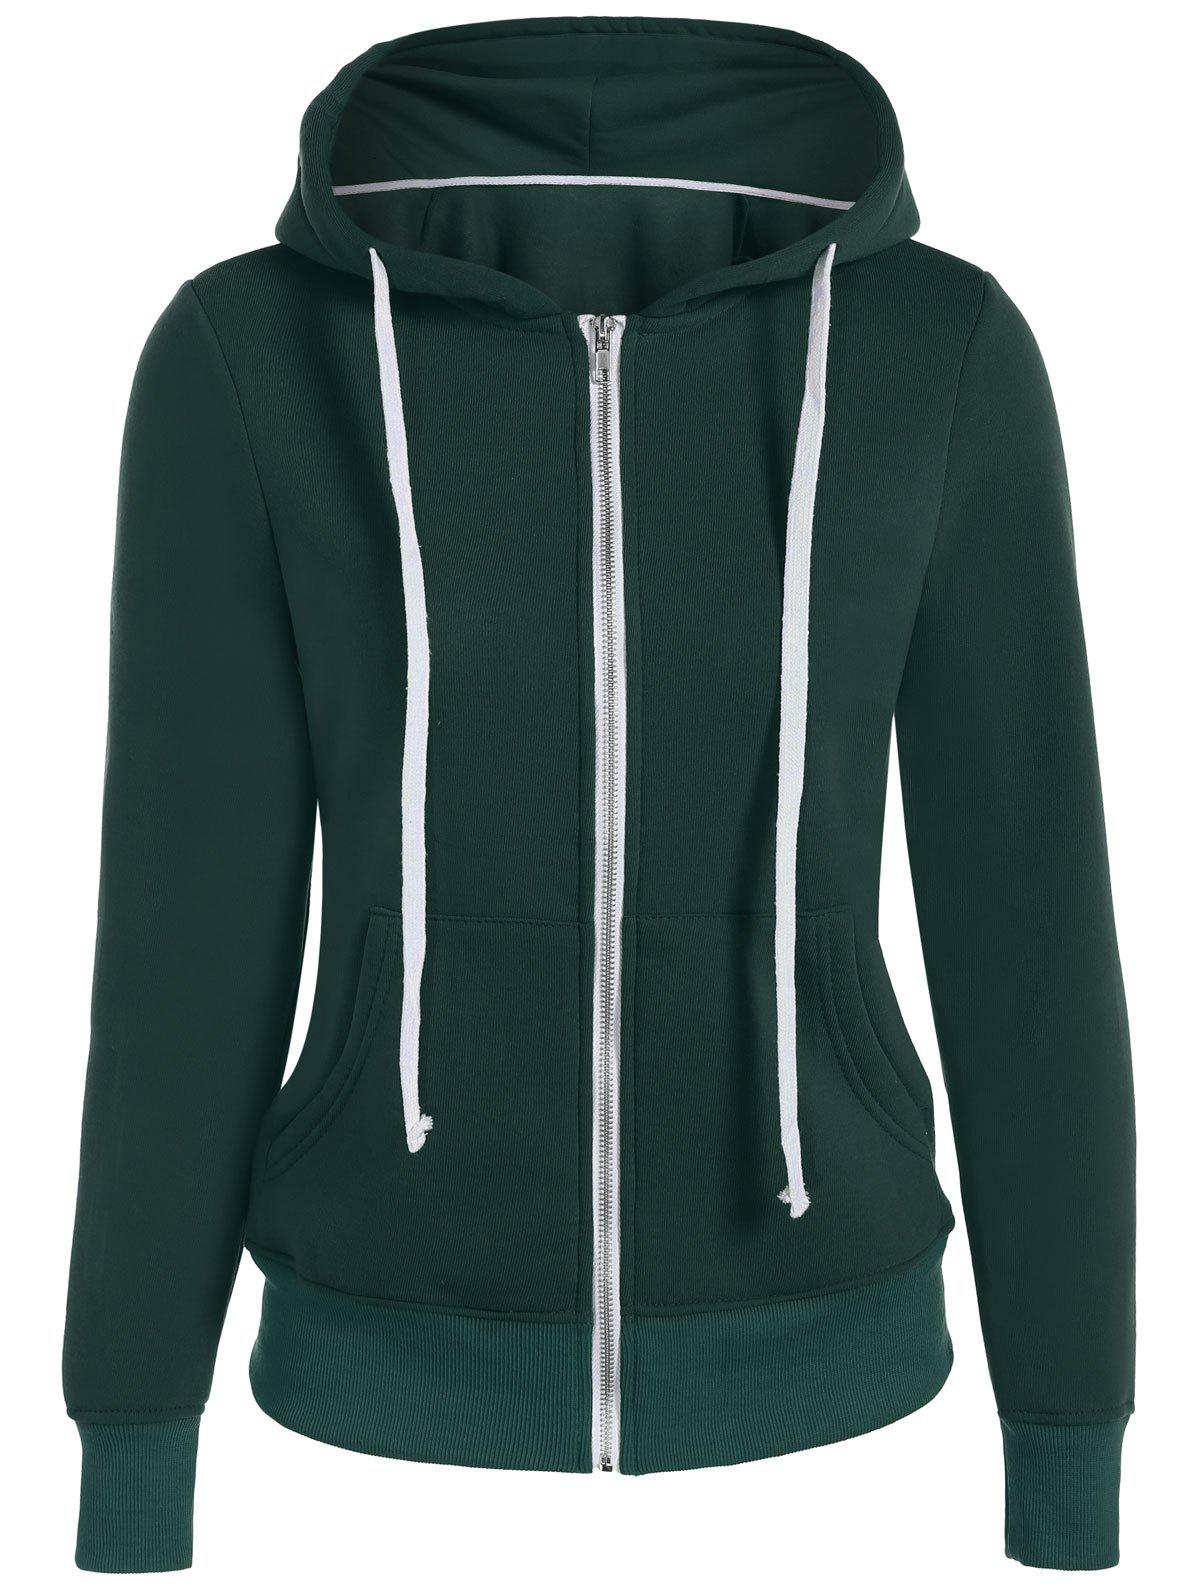 Fancy Zip Up Drawstring Pocket Design Hoodie